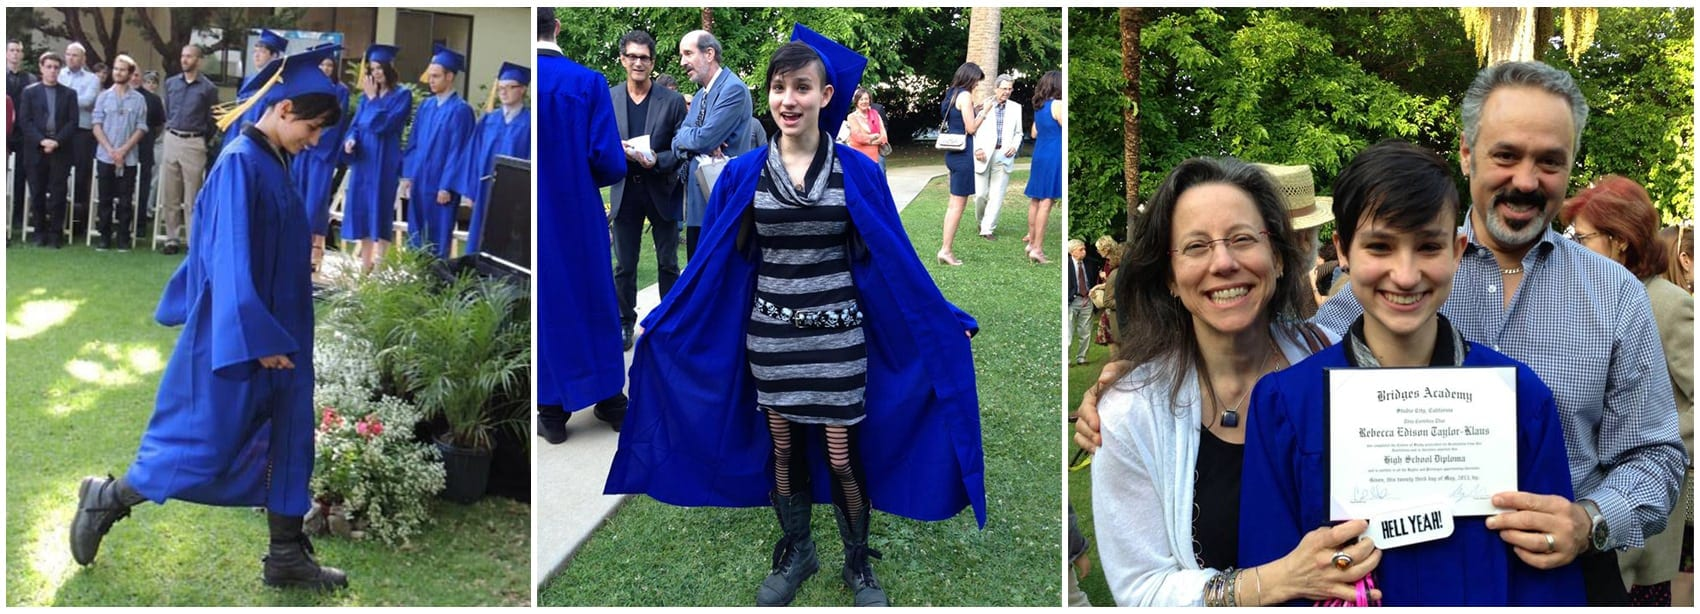 "Bex Taylor-Klaus at her high school graduation in May, wearing her ""Bullet"" boots."